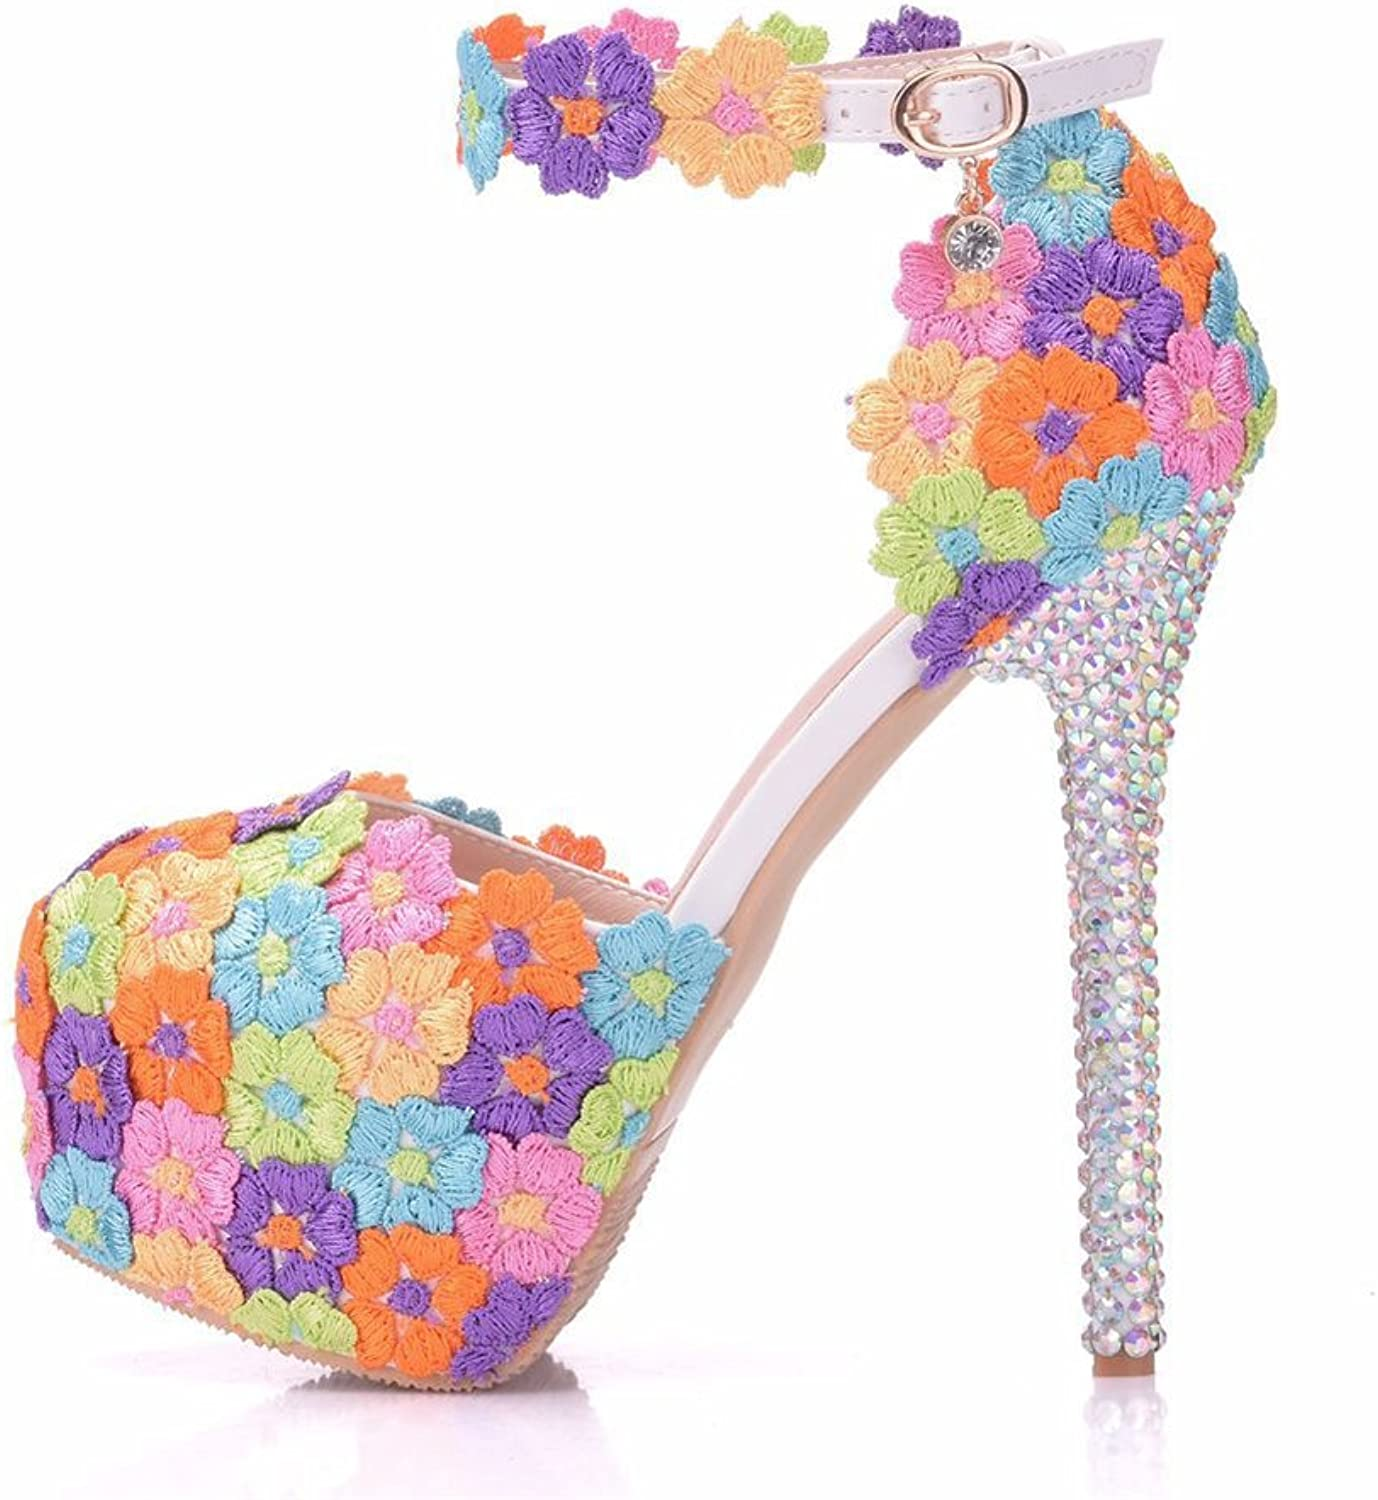 SUNNY Store Women's Pumps Lace colorful Flowers High Heels Sandals